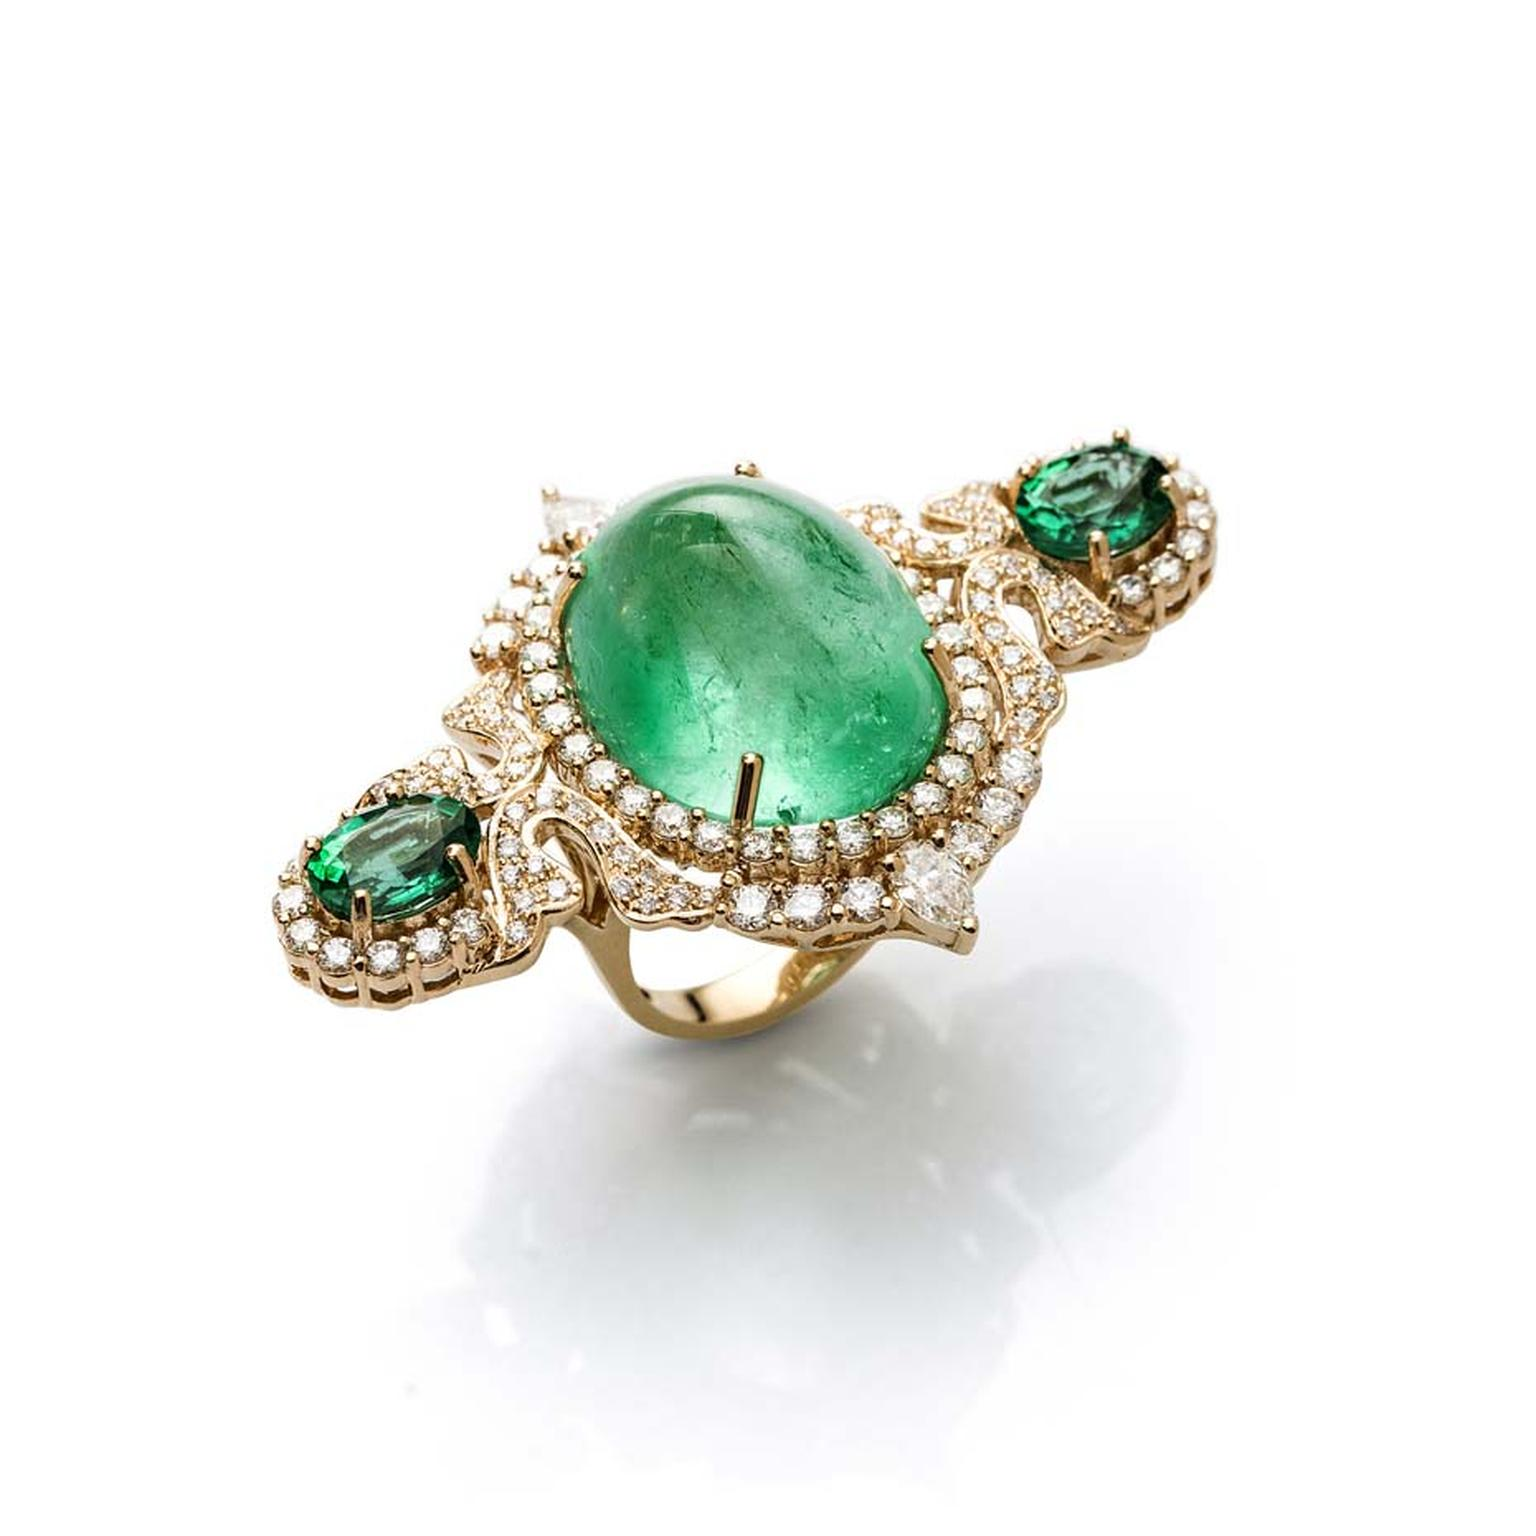 Fahra Khan_Le Jardin Exotique_Royal 30.42ct Columbian emerald three-finger Farah Khan ring in 18ct yellow gold.jpg